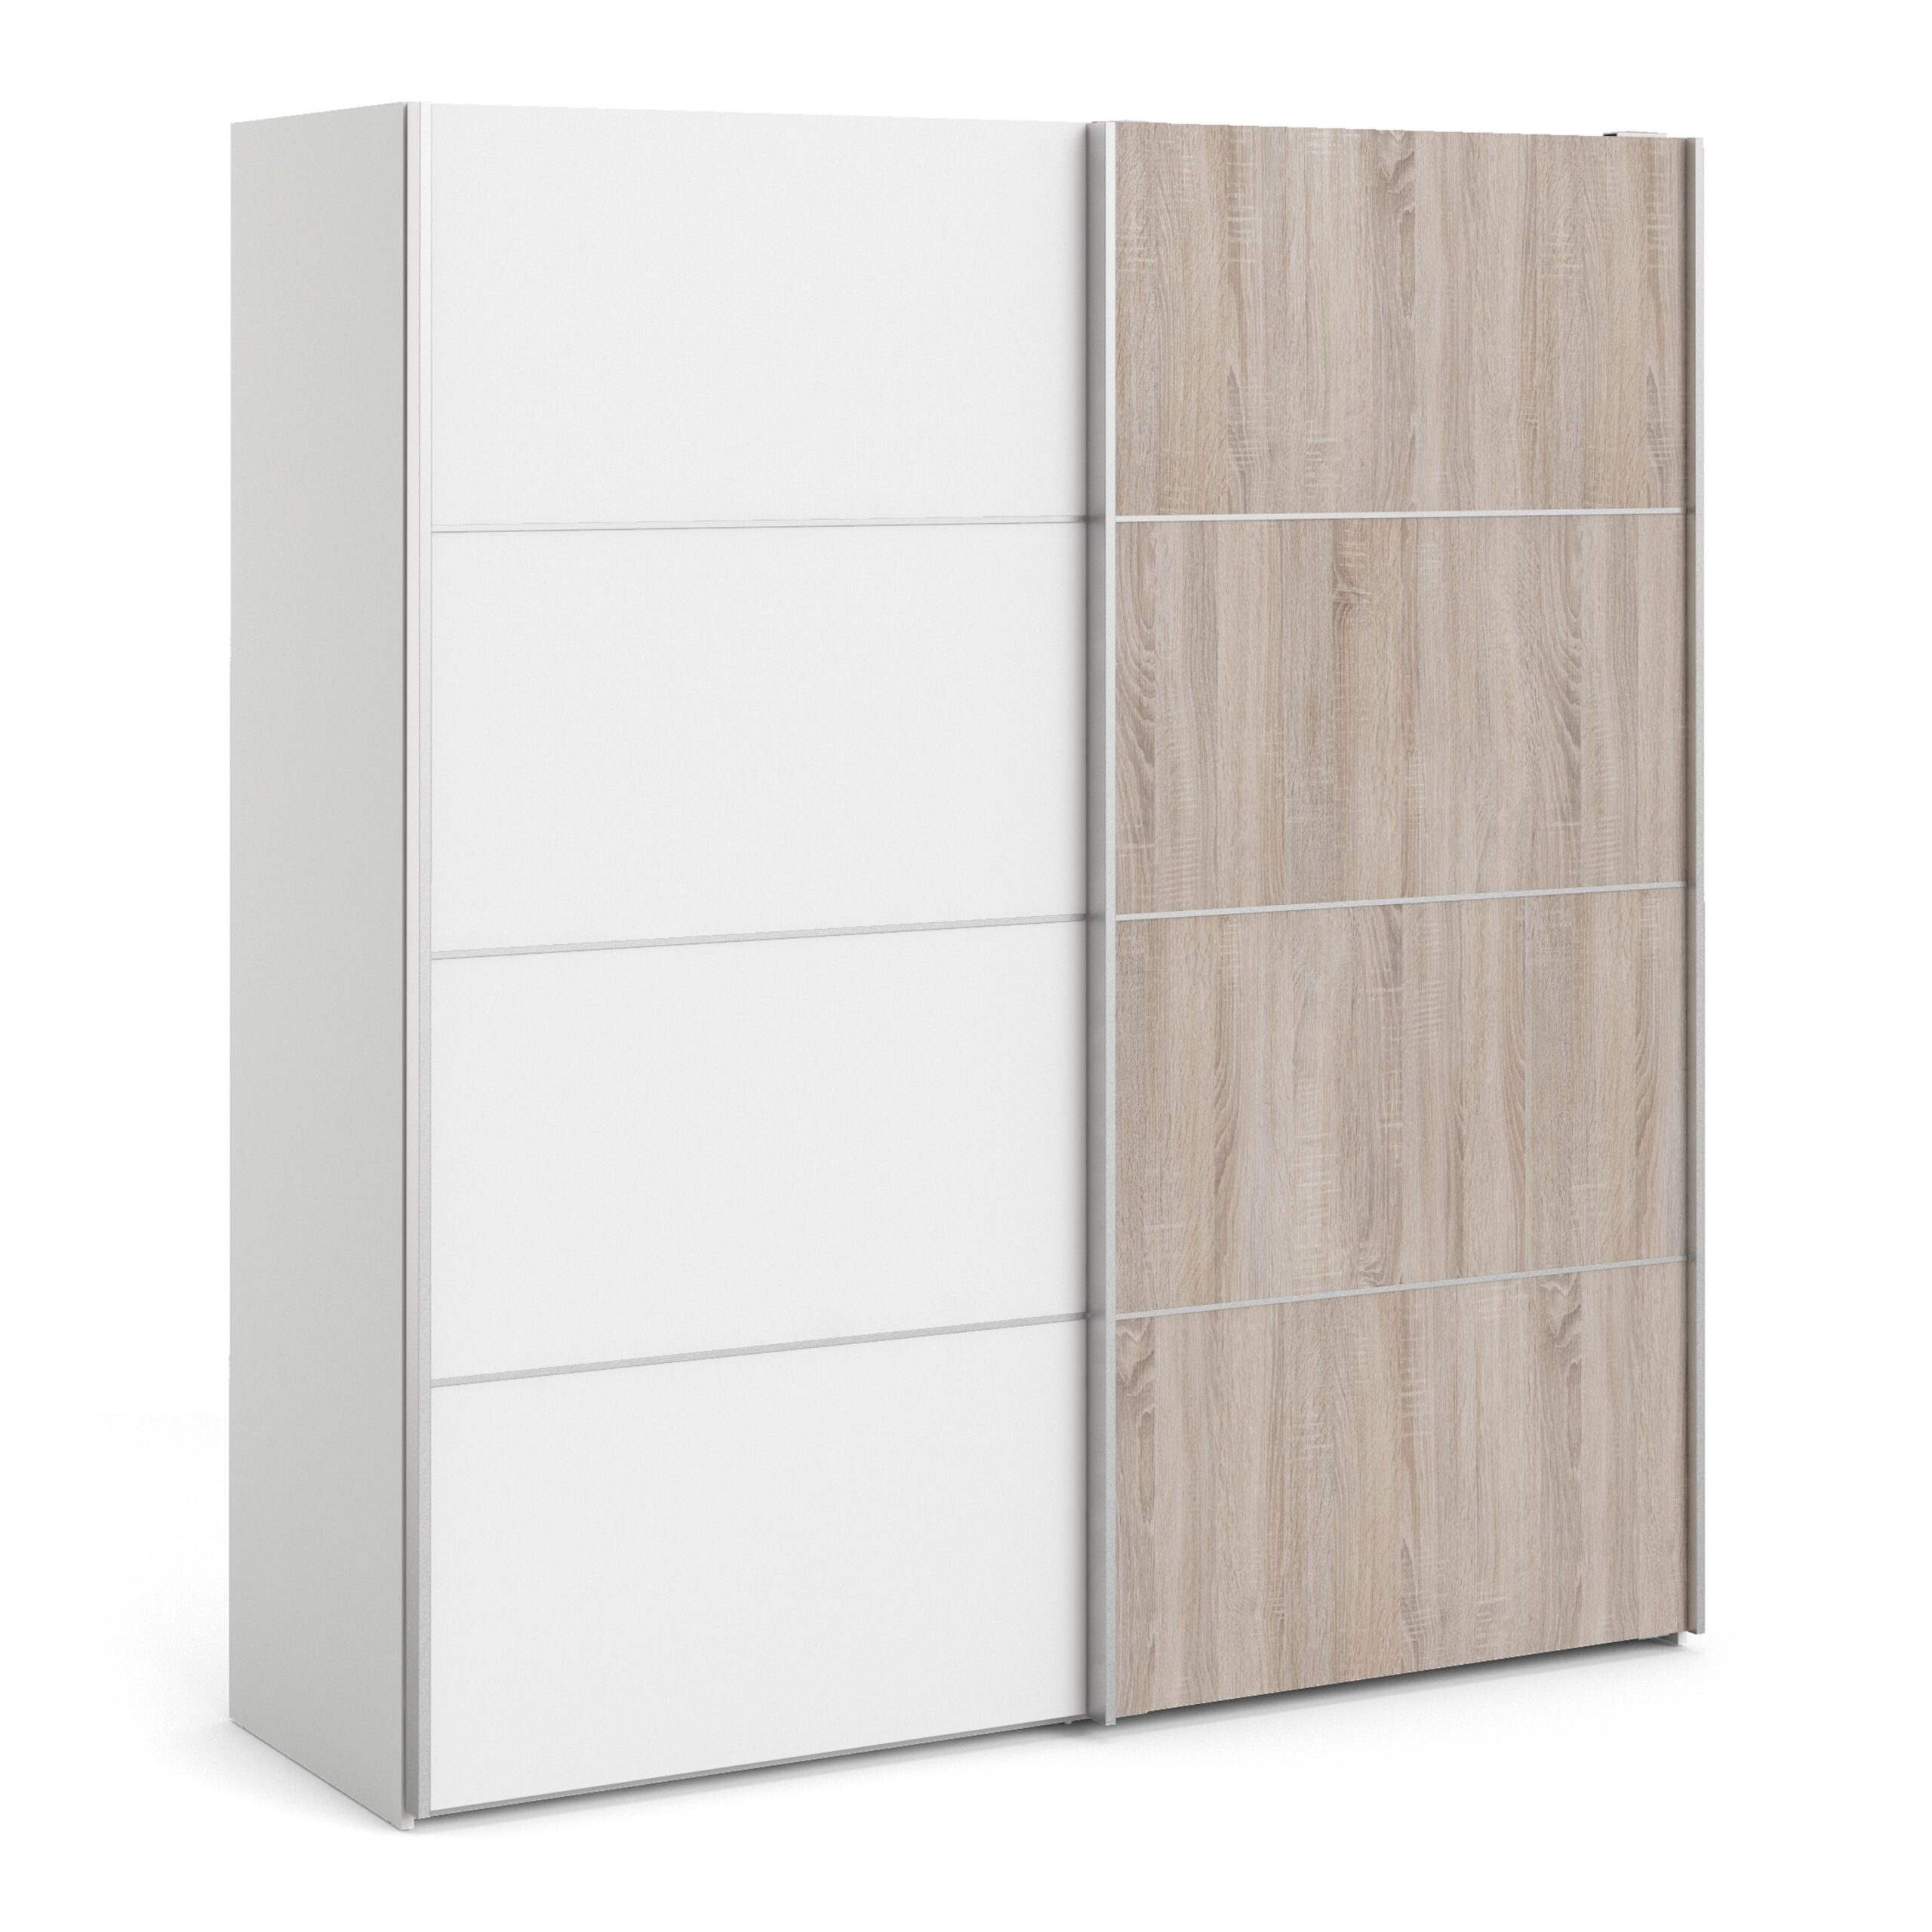 Phillipe Sliding Wardrobe 180cm In White With White And Truffle Oak Doors With Two Shelves